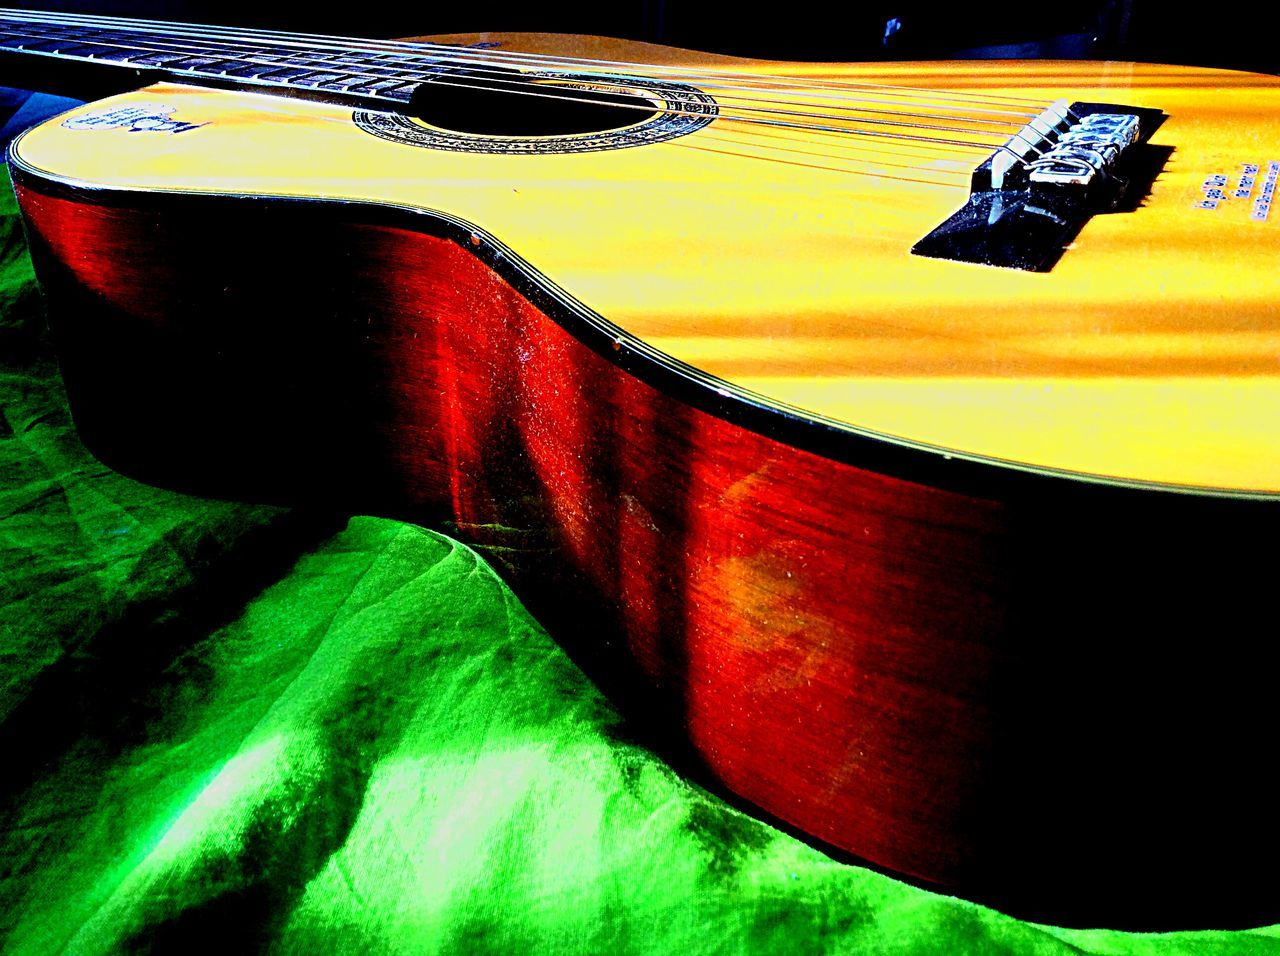 Close-Up Of Acoustic Guitar On Green Fabric